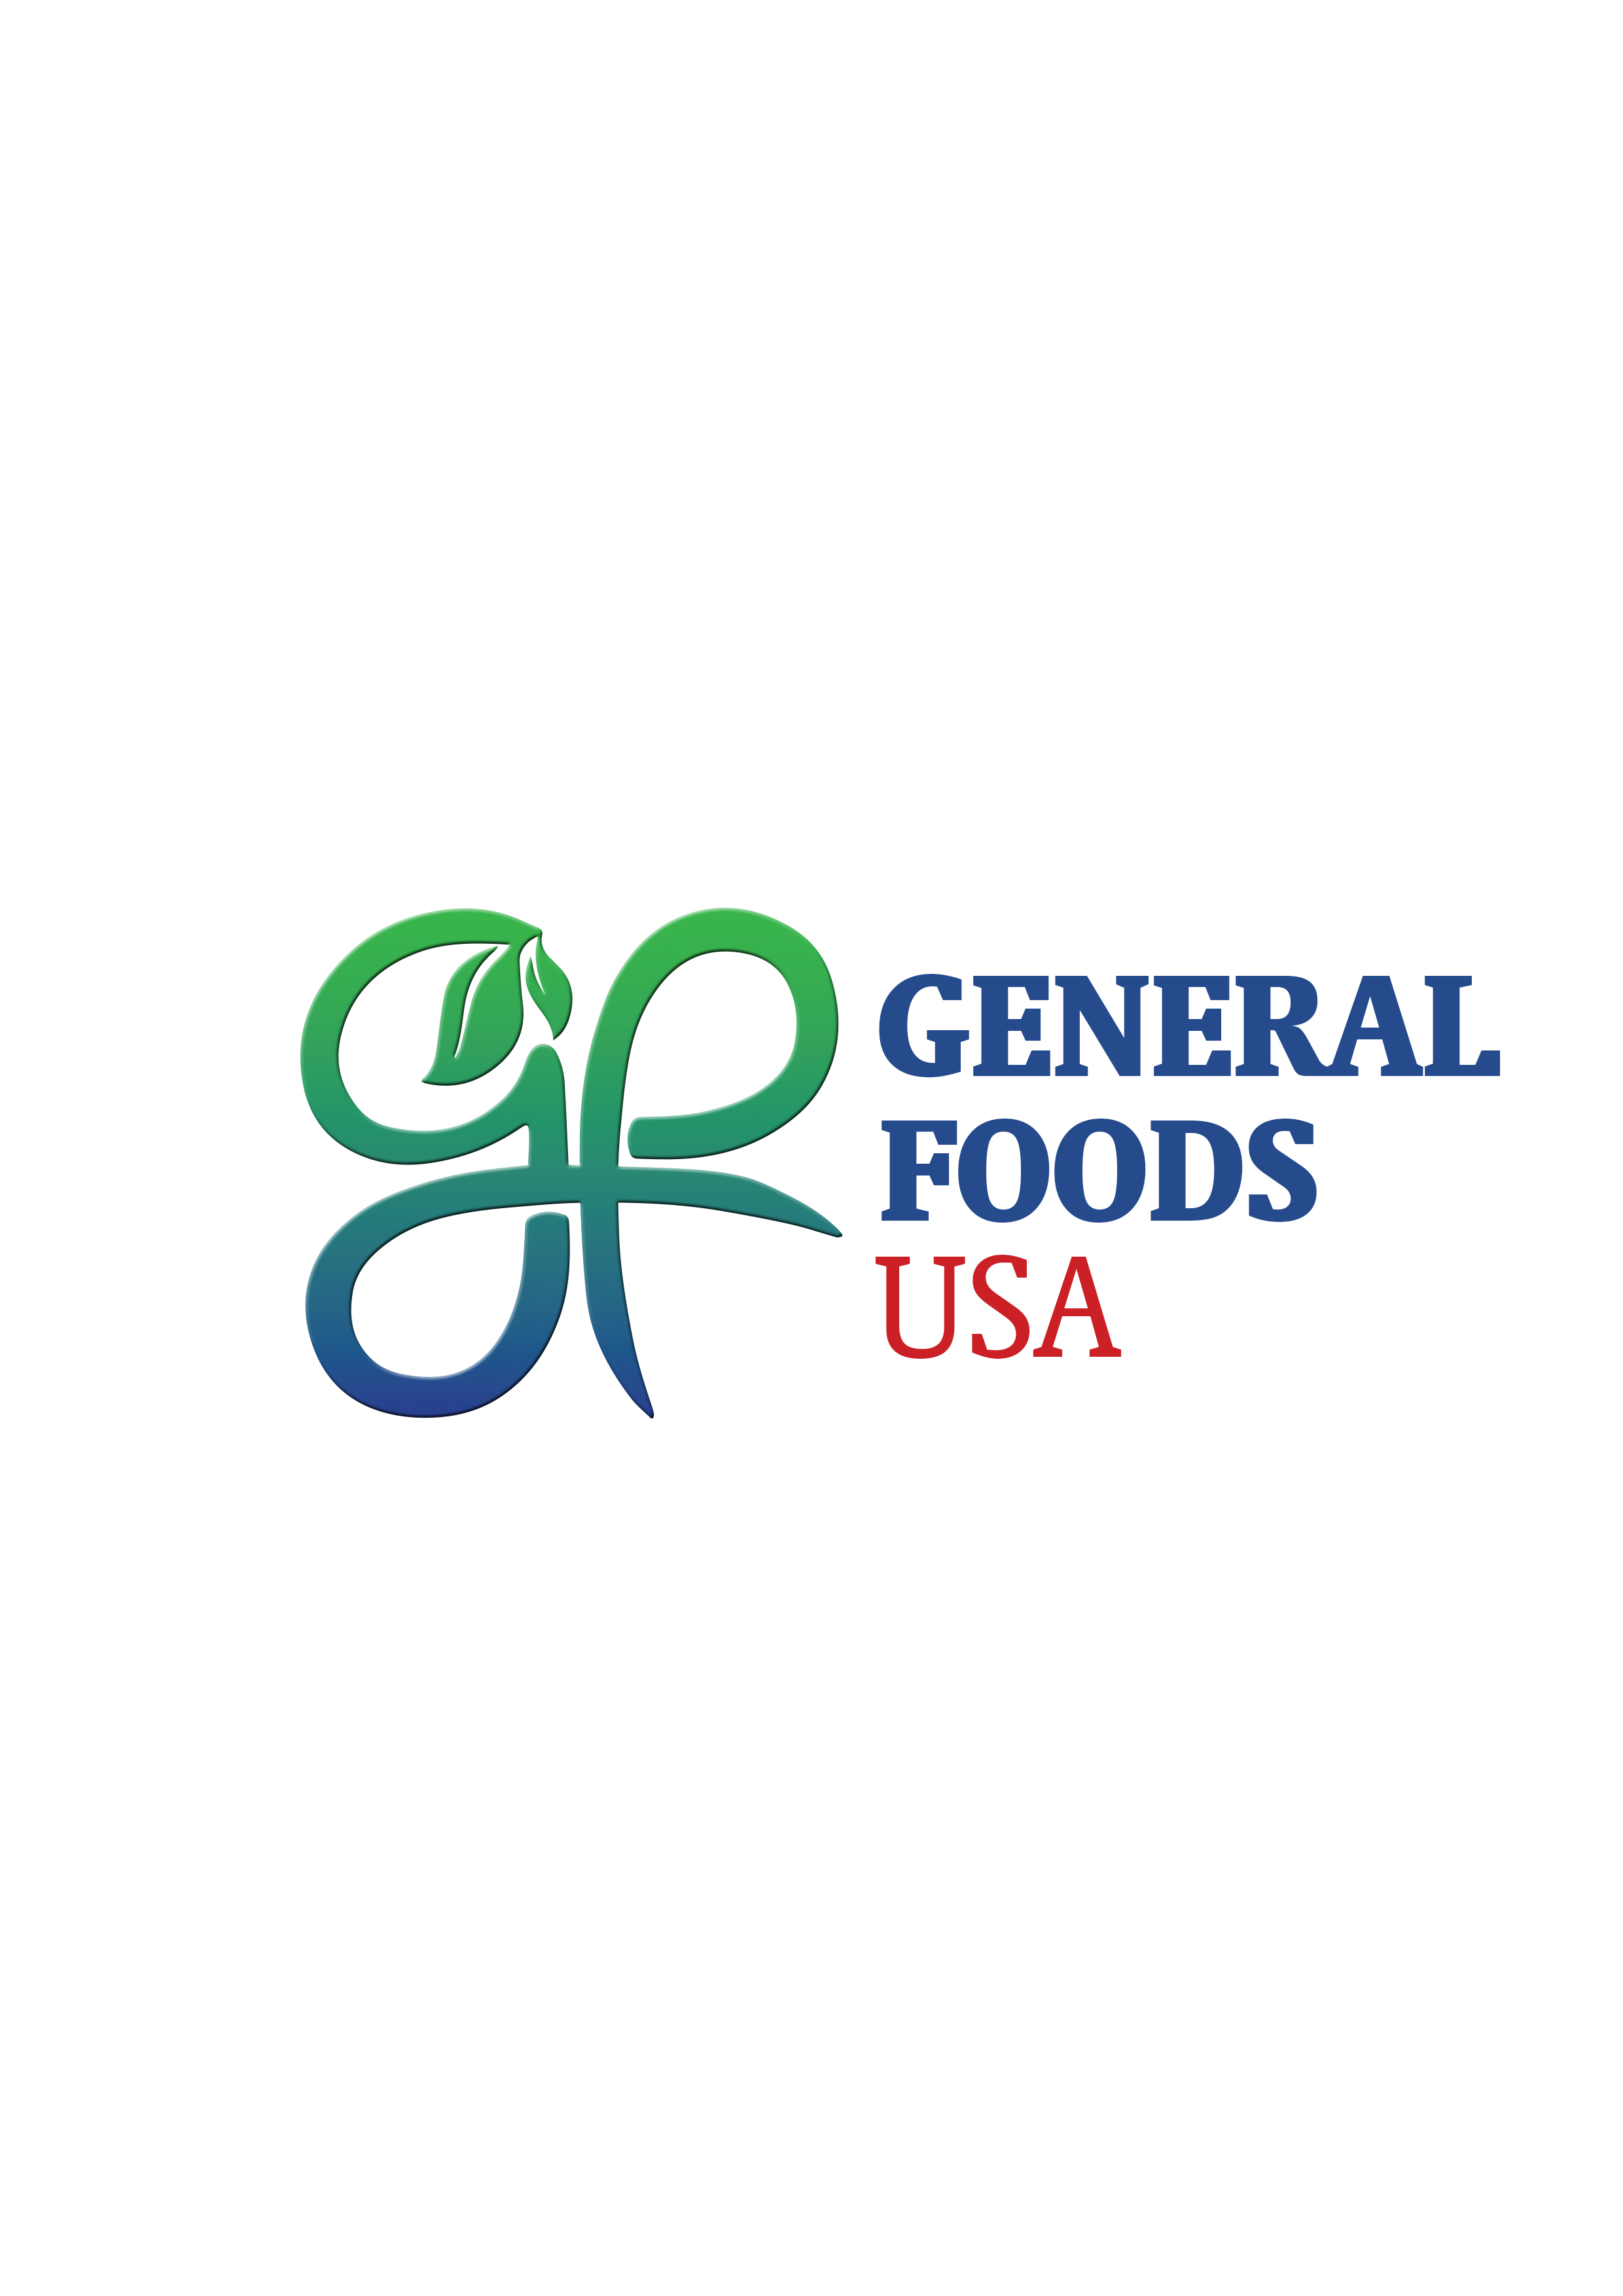 General Foods USA